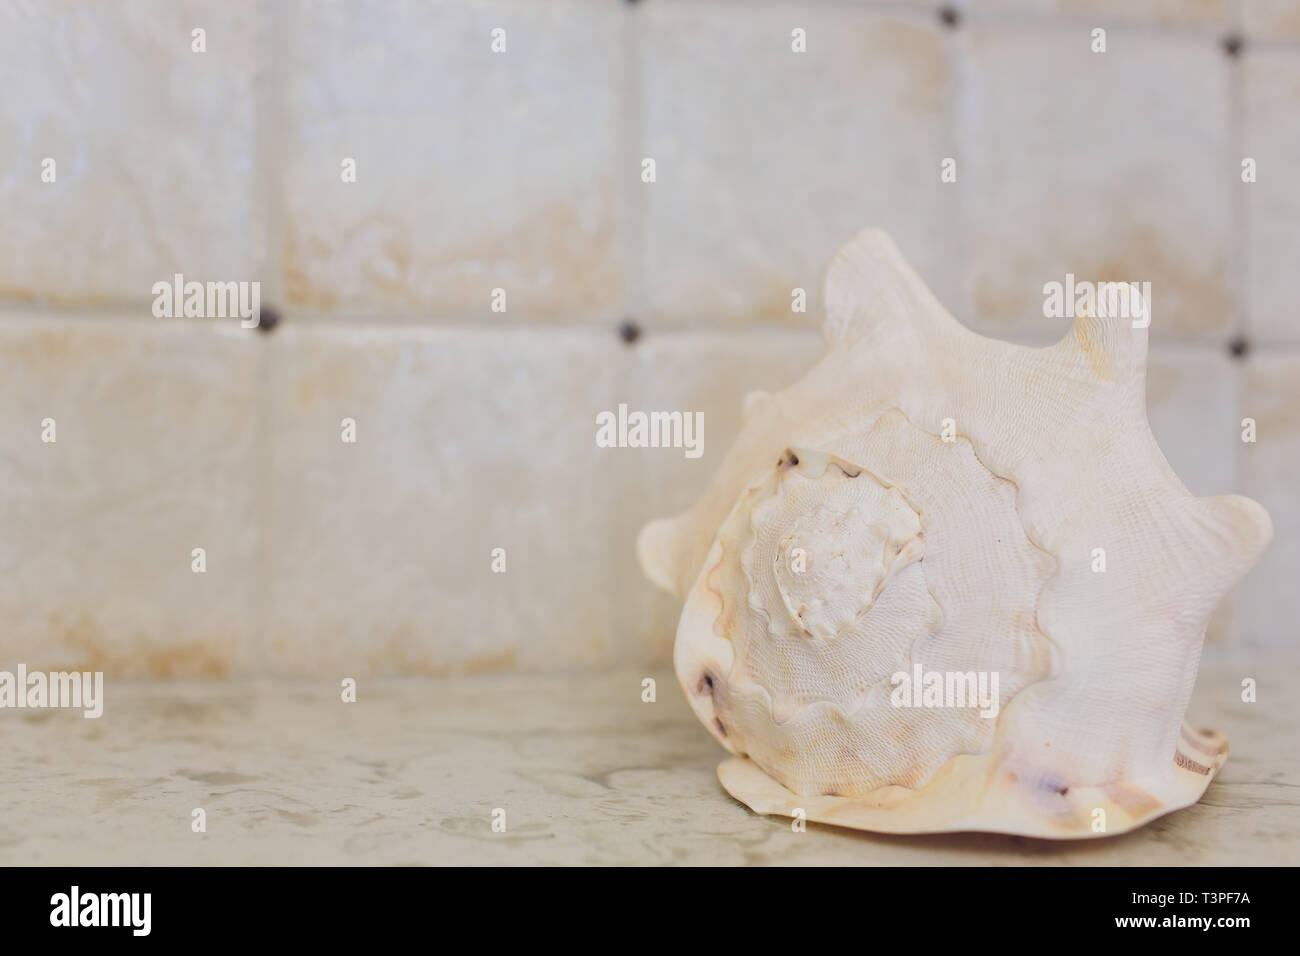 Beach Interior Decor Sea Shells And Lanterns On The Wooden Coffee Table Natural Colors Detail Of Living Room Stock Photo Alamy